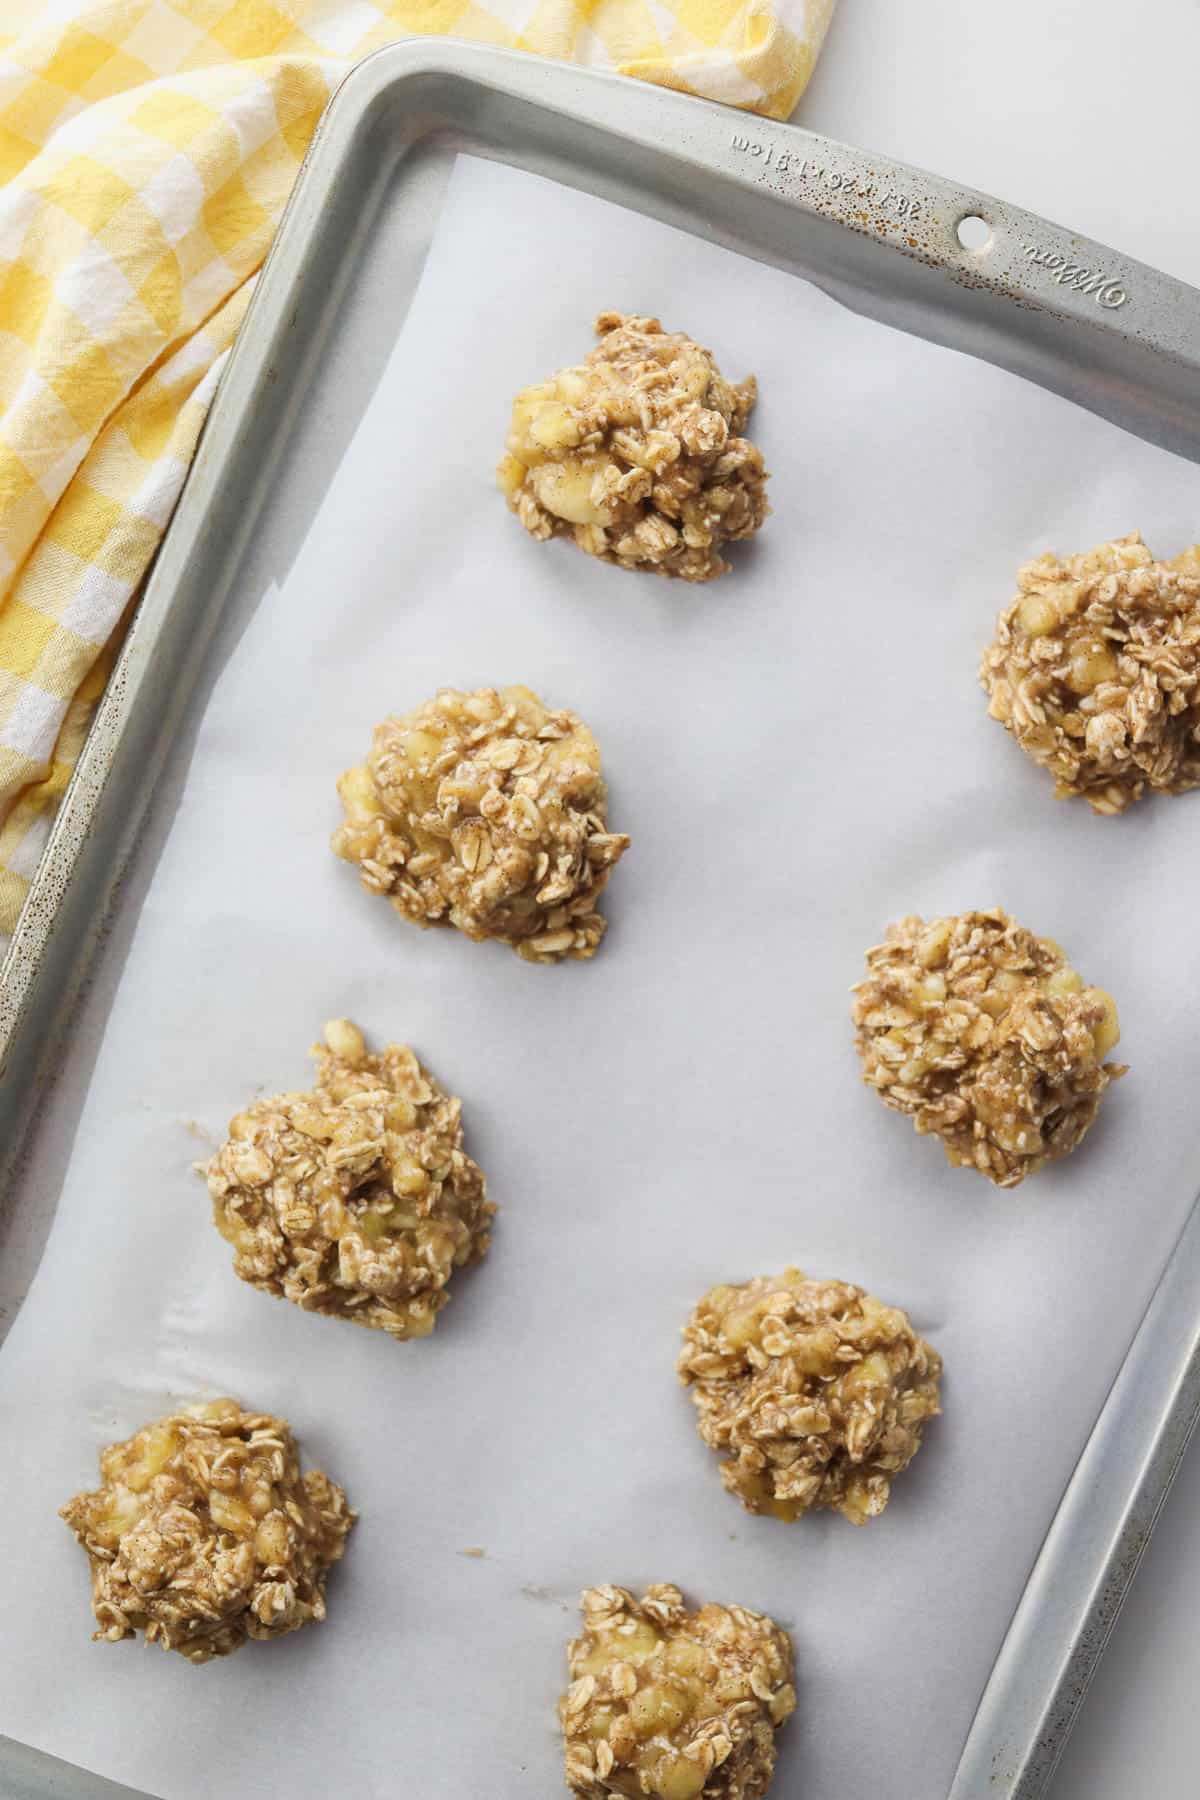 banana oatmeal cookies on a cookie sheet with yellow towel